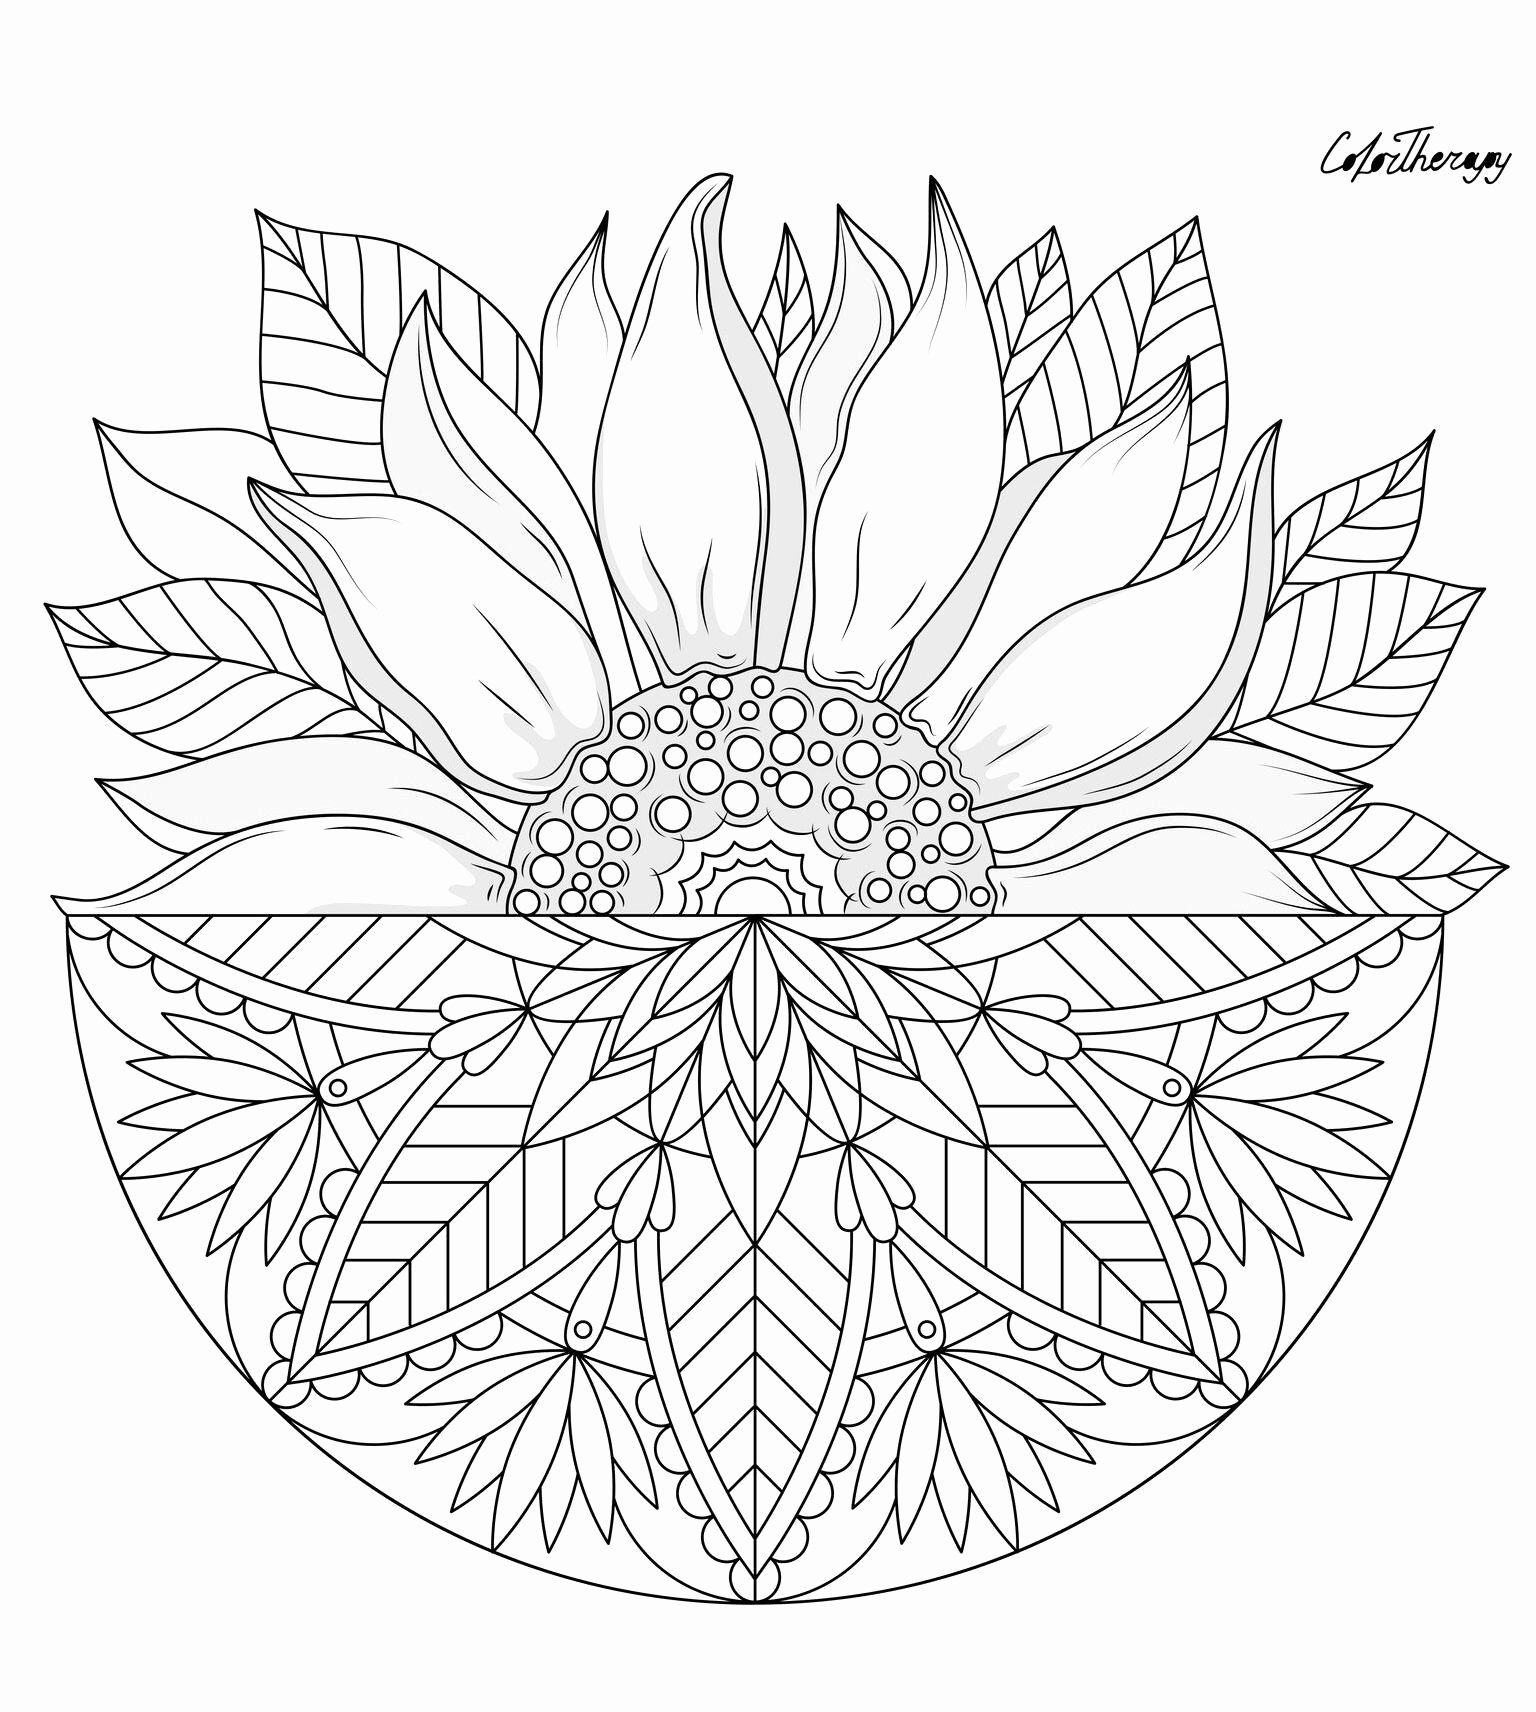 Coloring Books With Flowers Best Of Pin By Tina Wichert On